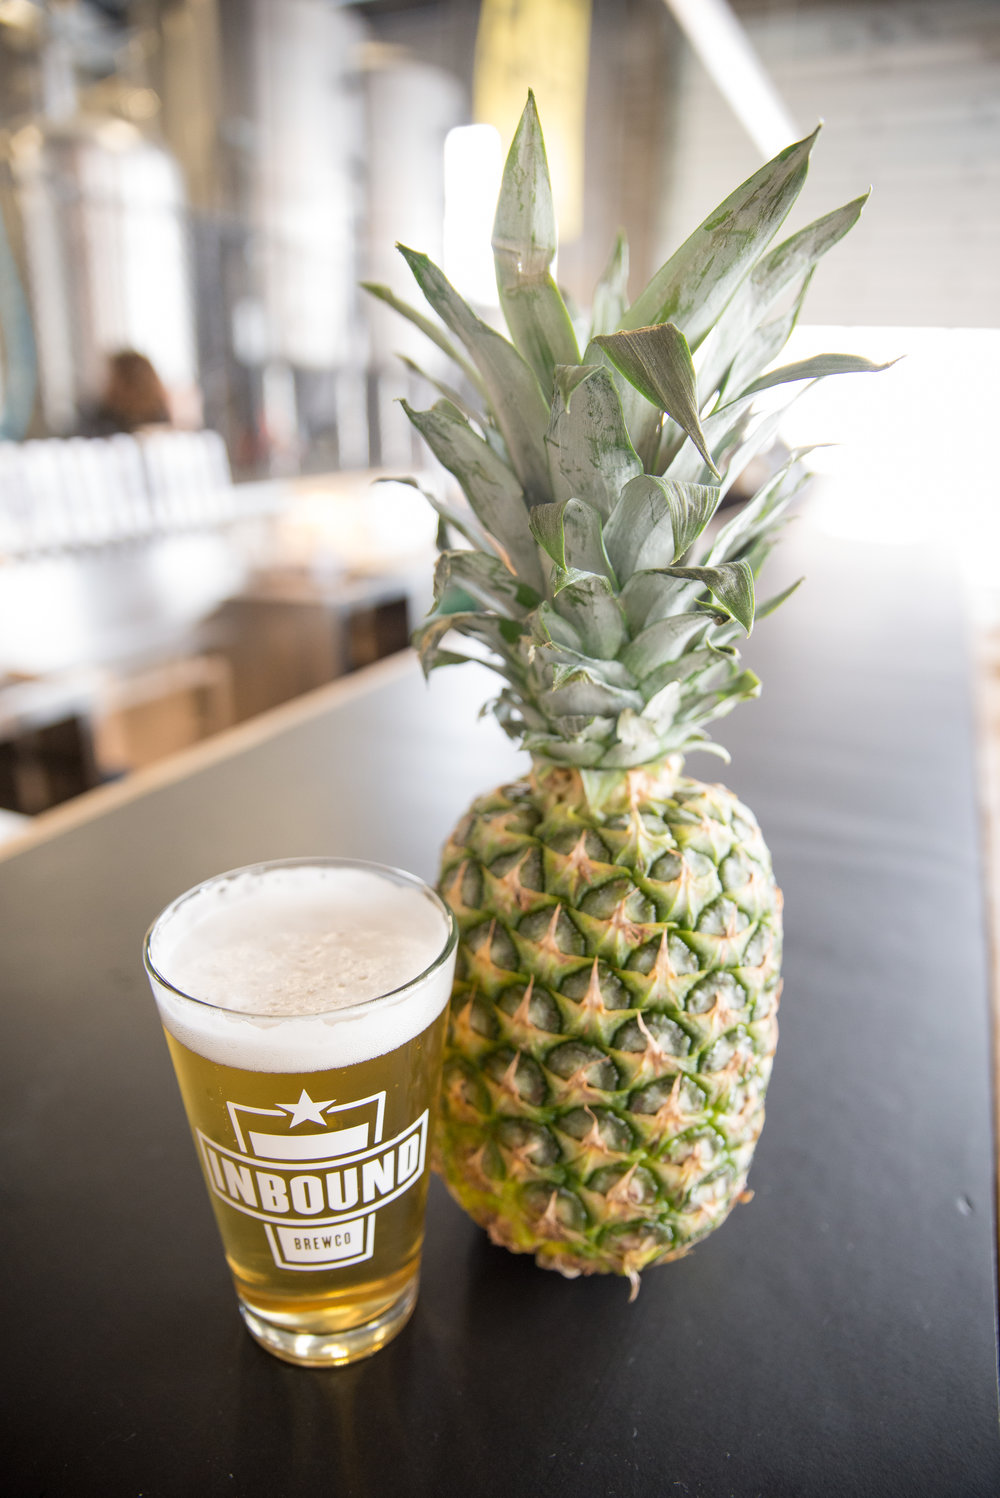 Inbound International Women's Day Beer Pineapple Gose